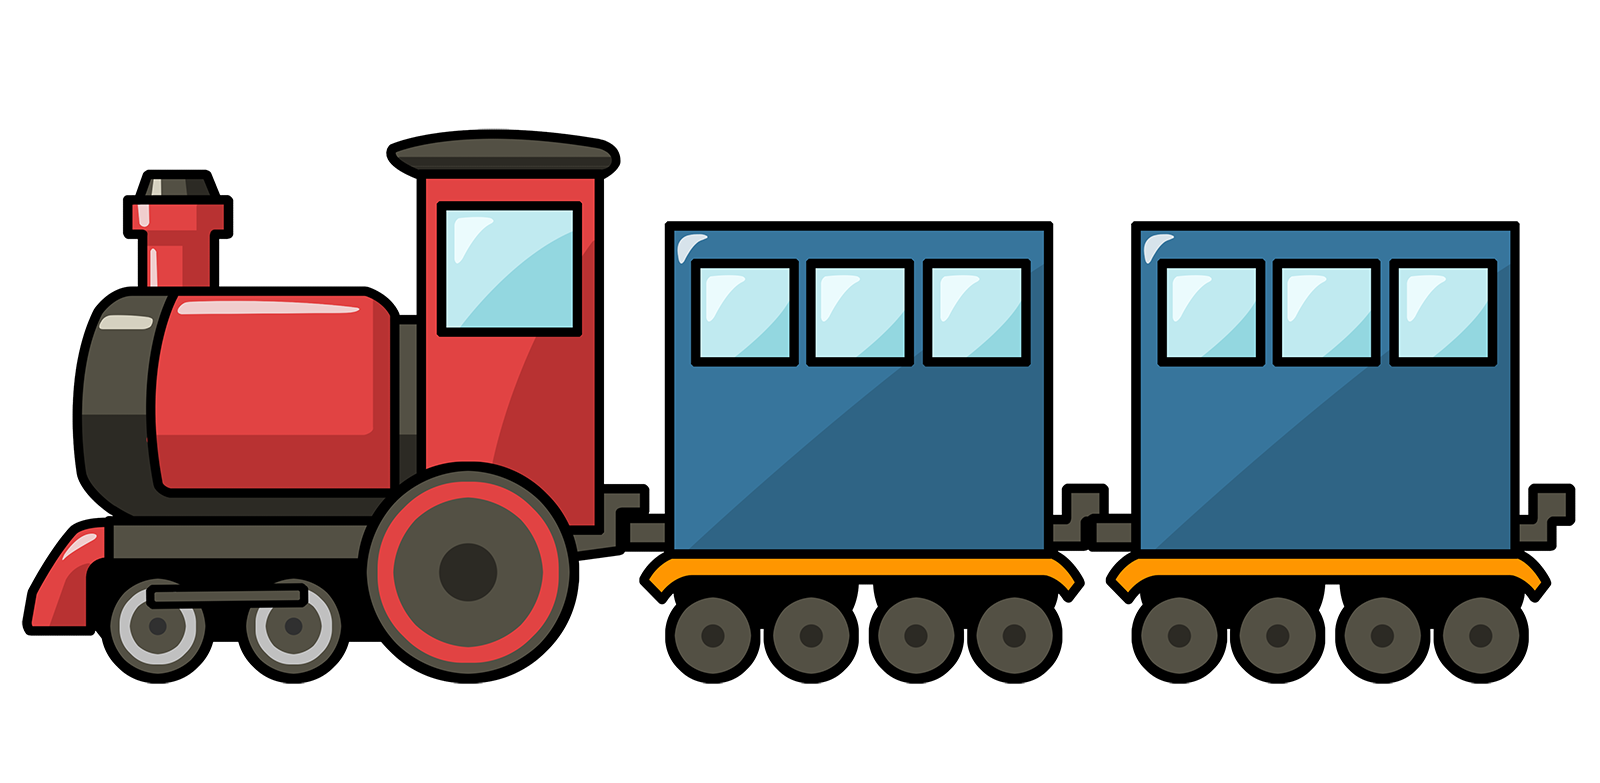 Car with smoke clipart picture download Cartoon Train | Free Cute Cartoon Train Clip Art | Cartoon Trains ... picture download